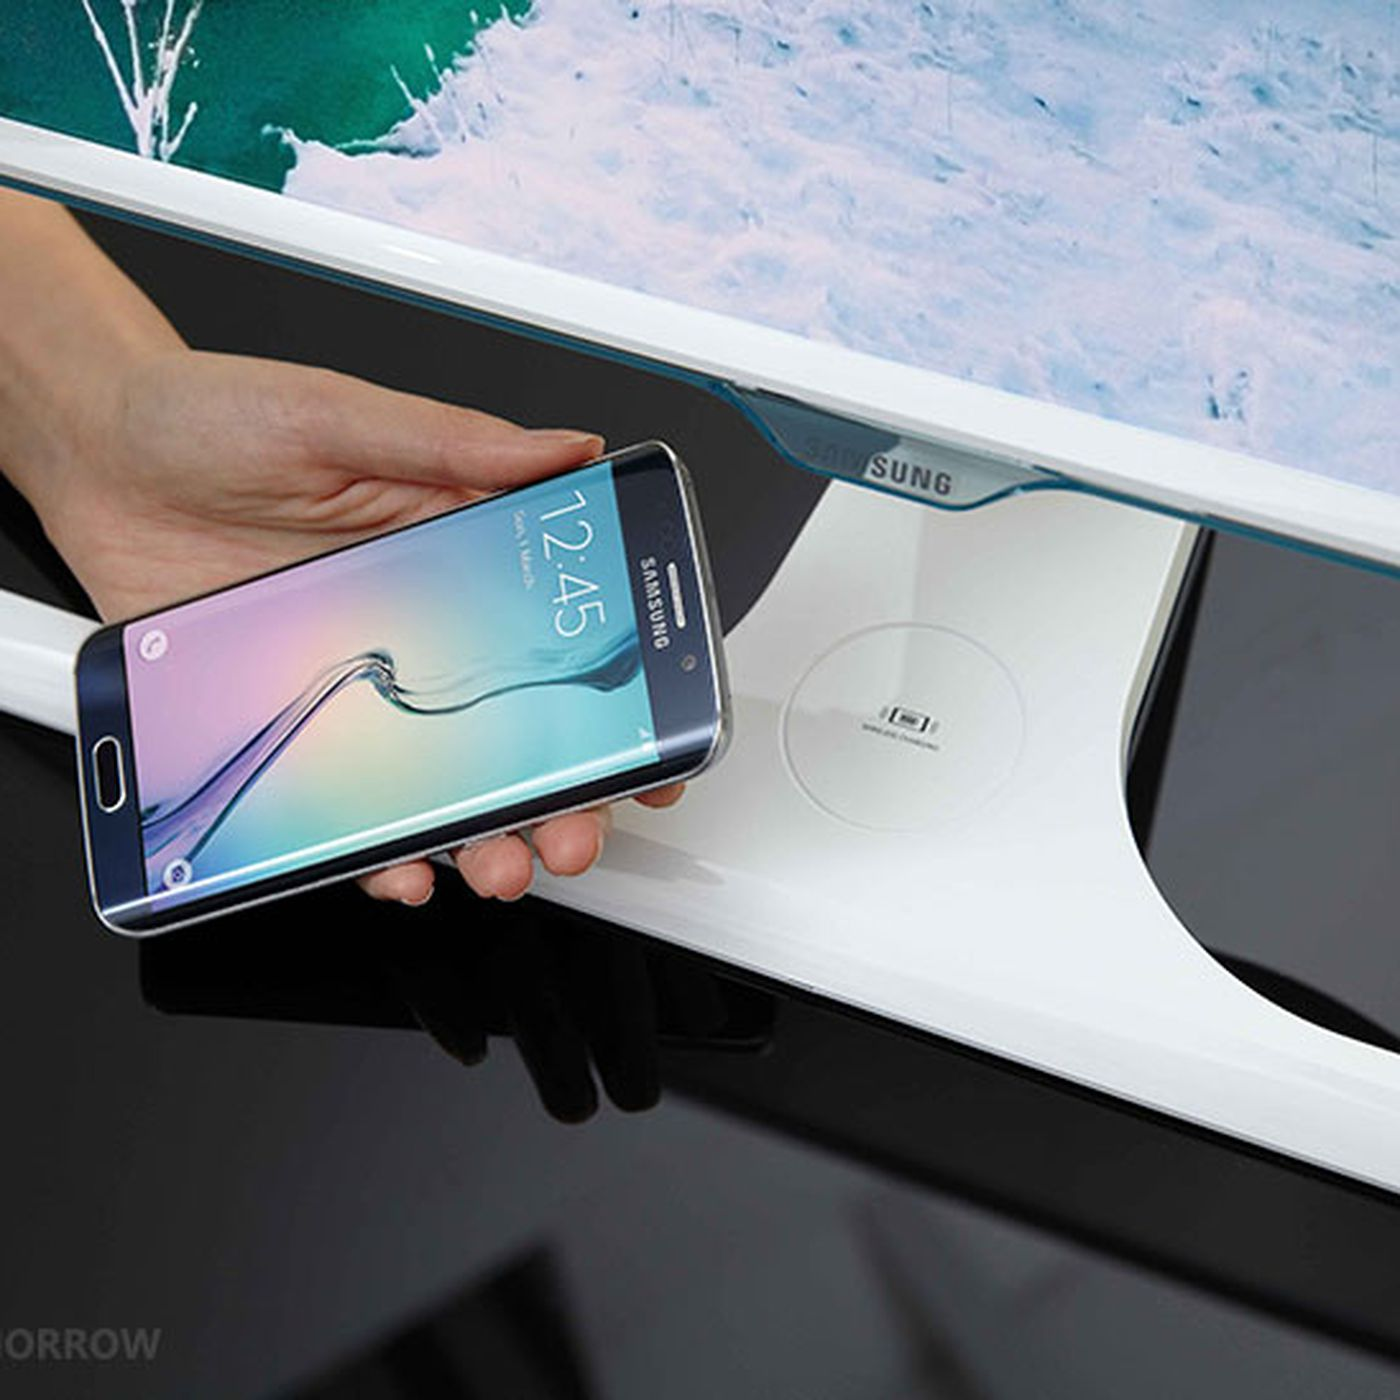 Samsung's new monitor doubles as a wireless charger, because